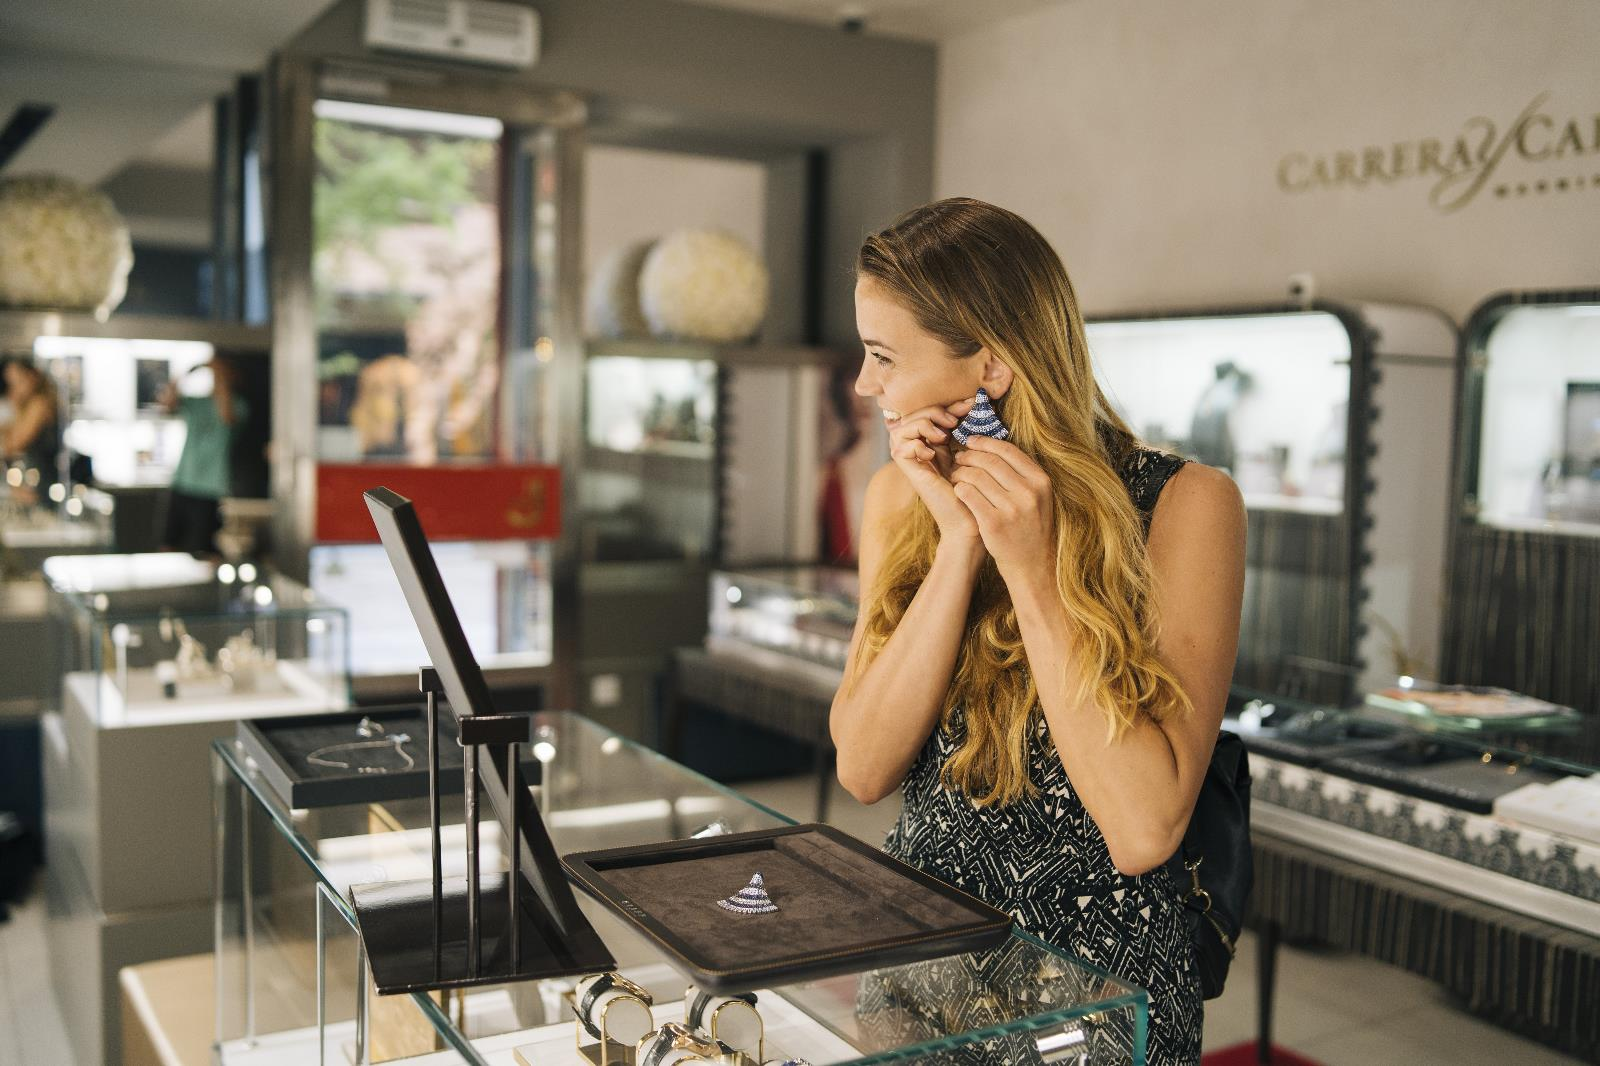 Shopping and lifestyle, Jewellery shops in the region